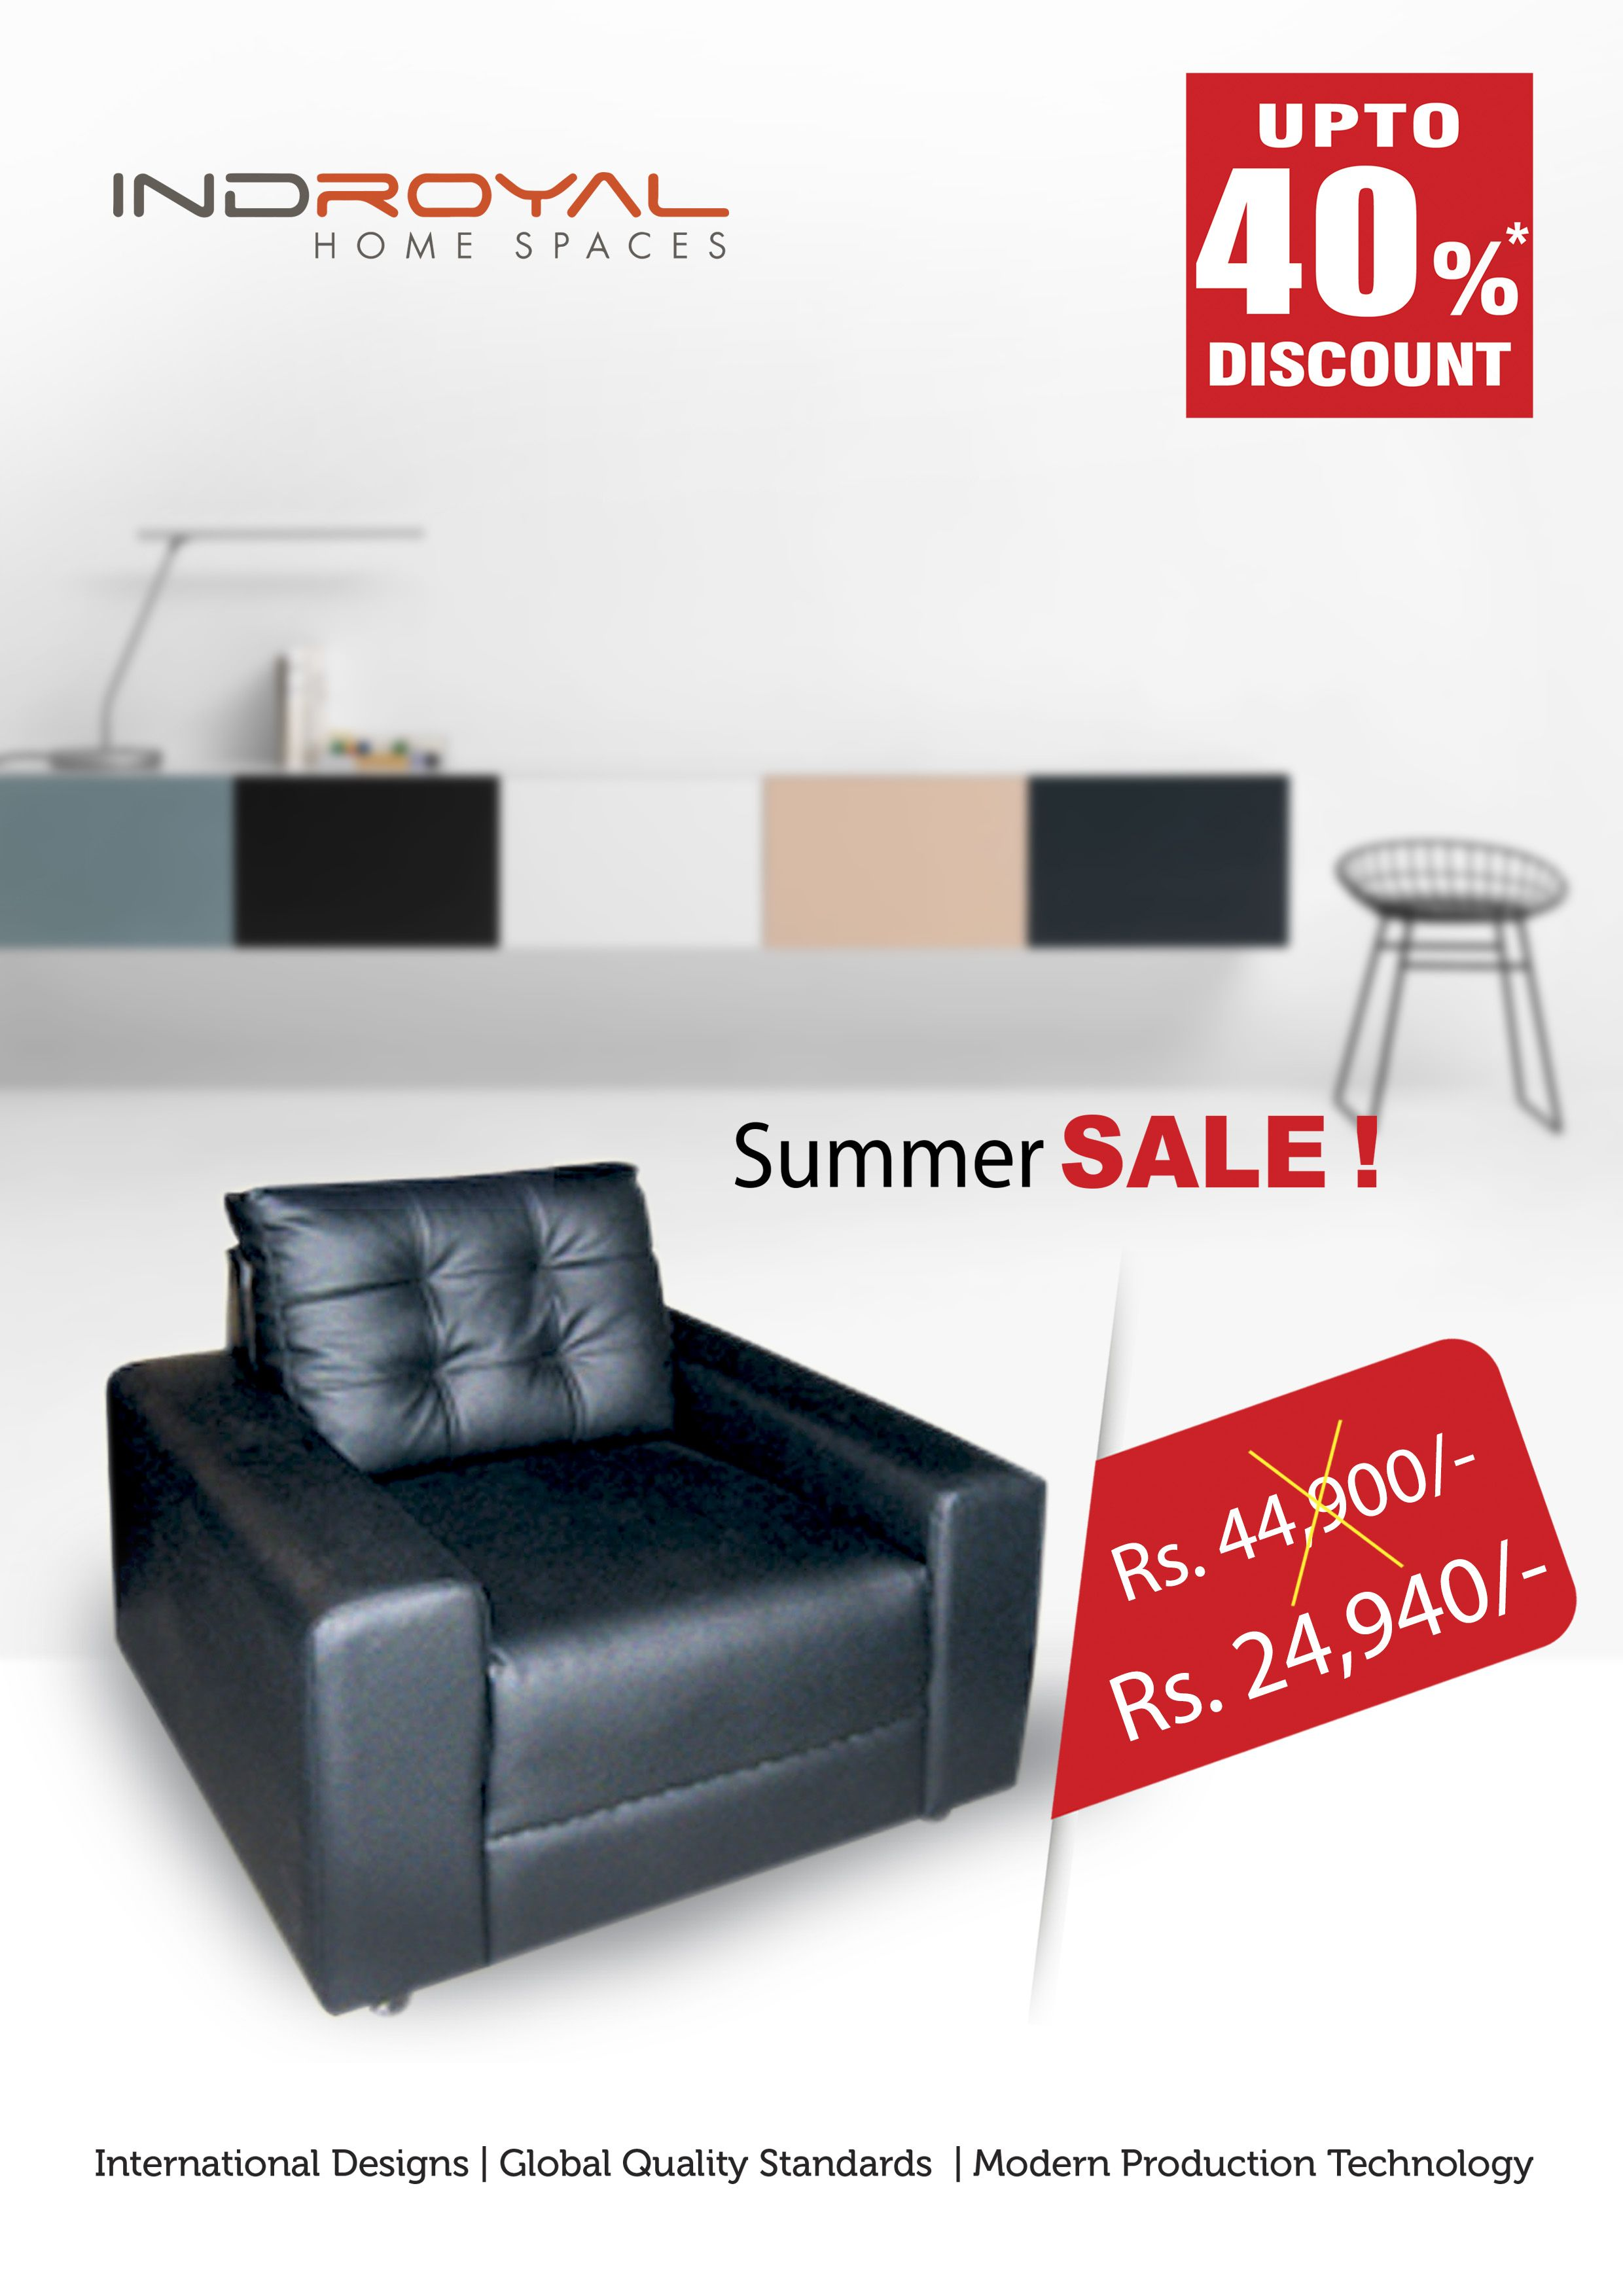 summer furniture sale. Summer Special Offer For You!!! Up To 40% Discount Indroyal Furniture. Visit Your Nearest Showroom Now.. #indroyalHomeSpaces #furniture #summerOffer # Furniture Sale